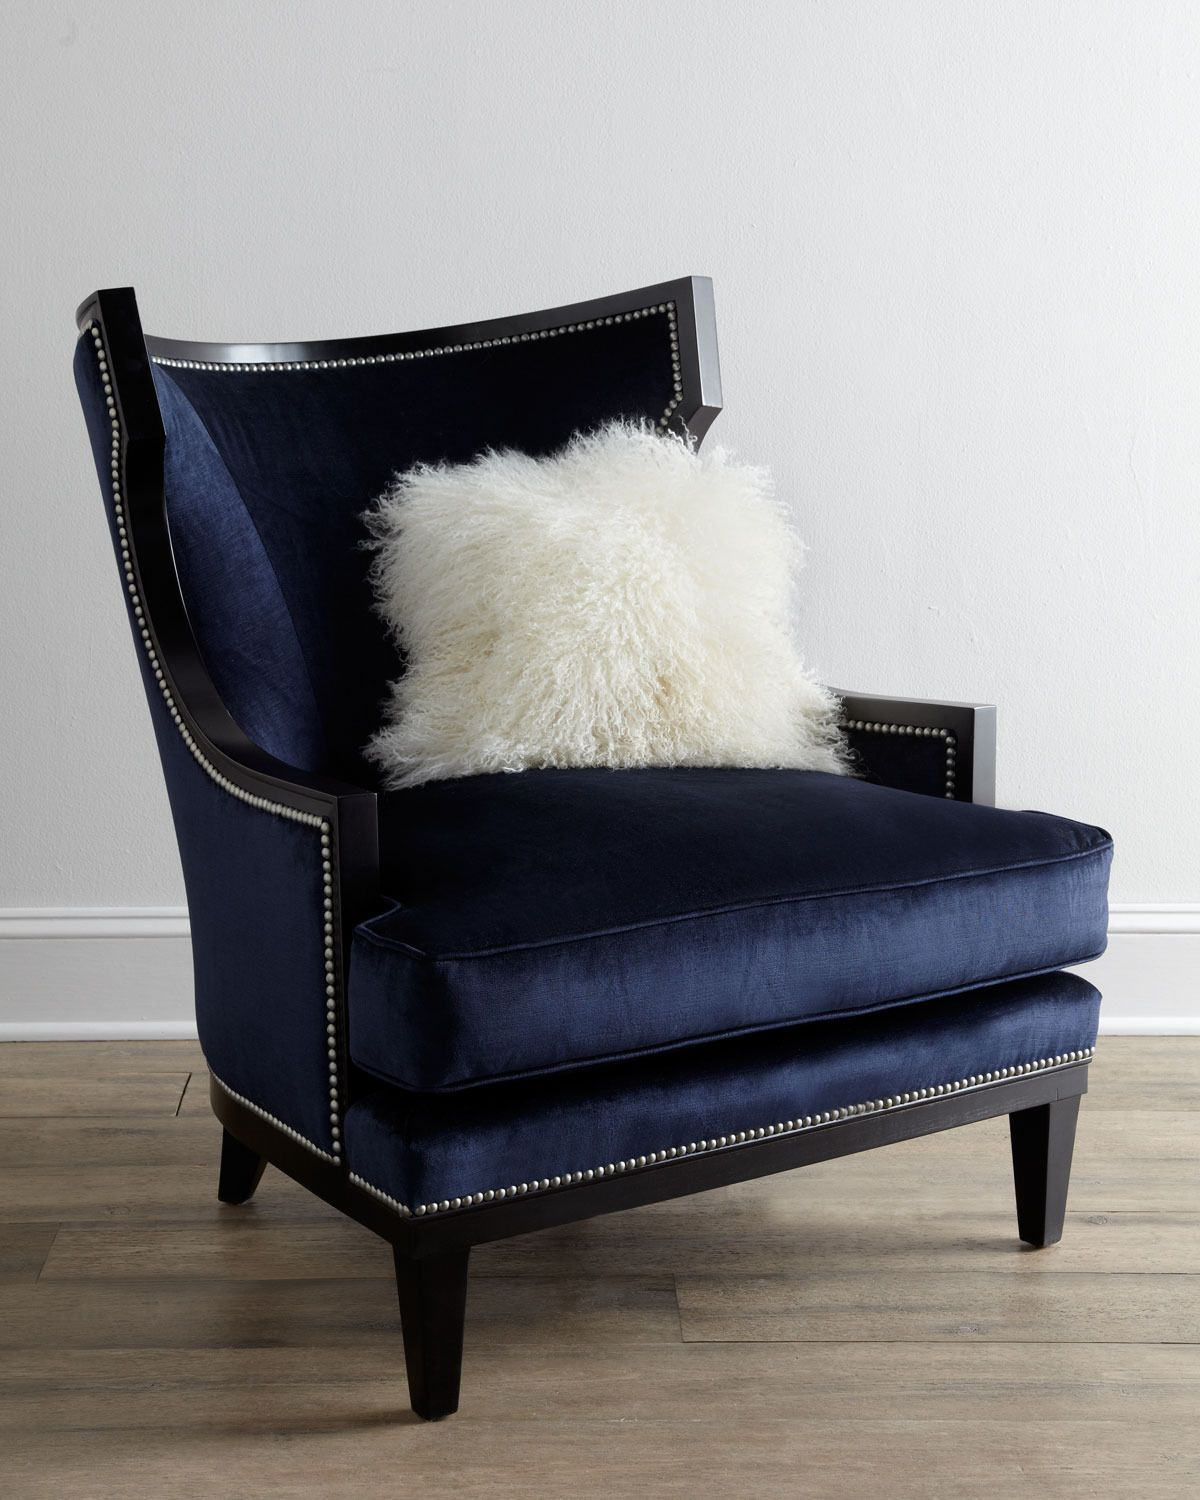 Pillows For Living Room Chairs: Living Room Pillows, Blue